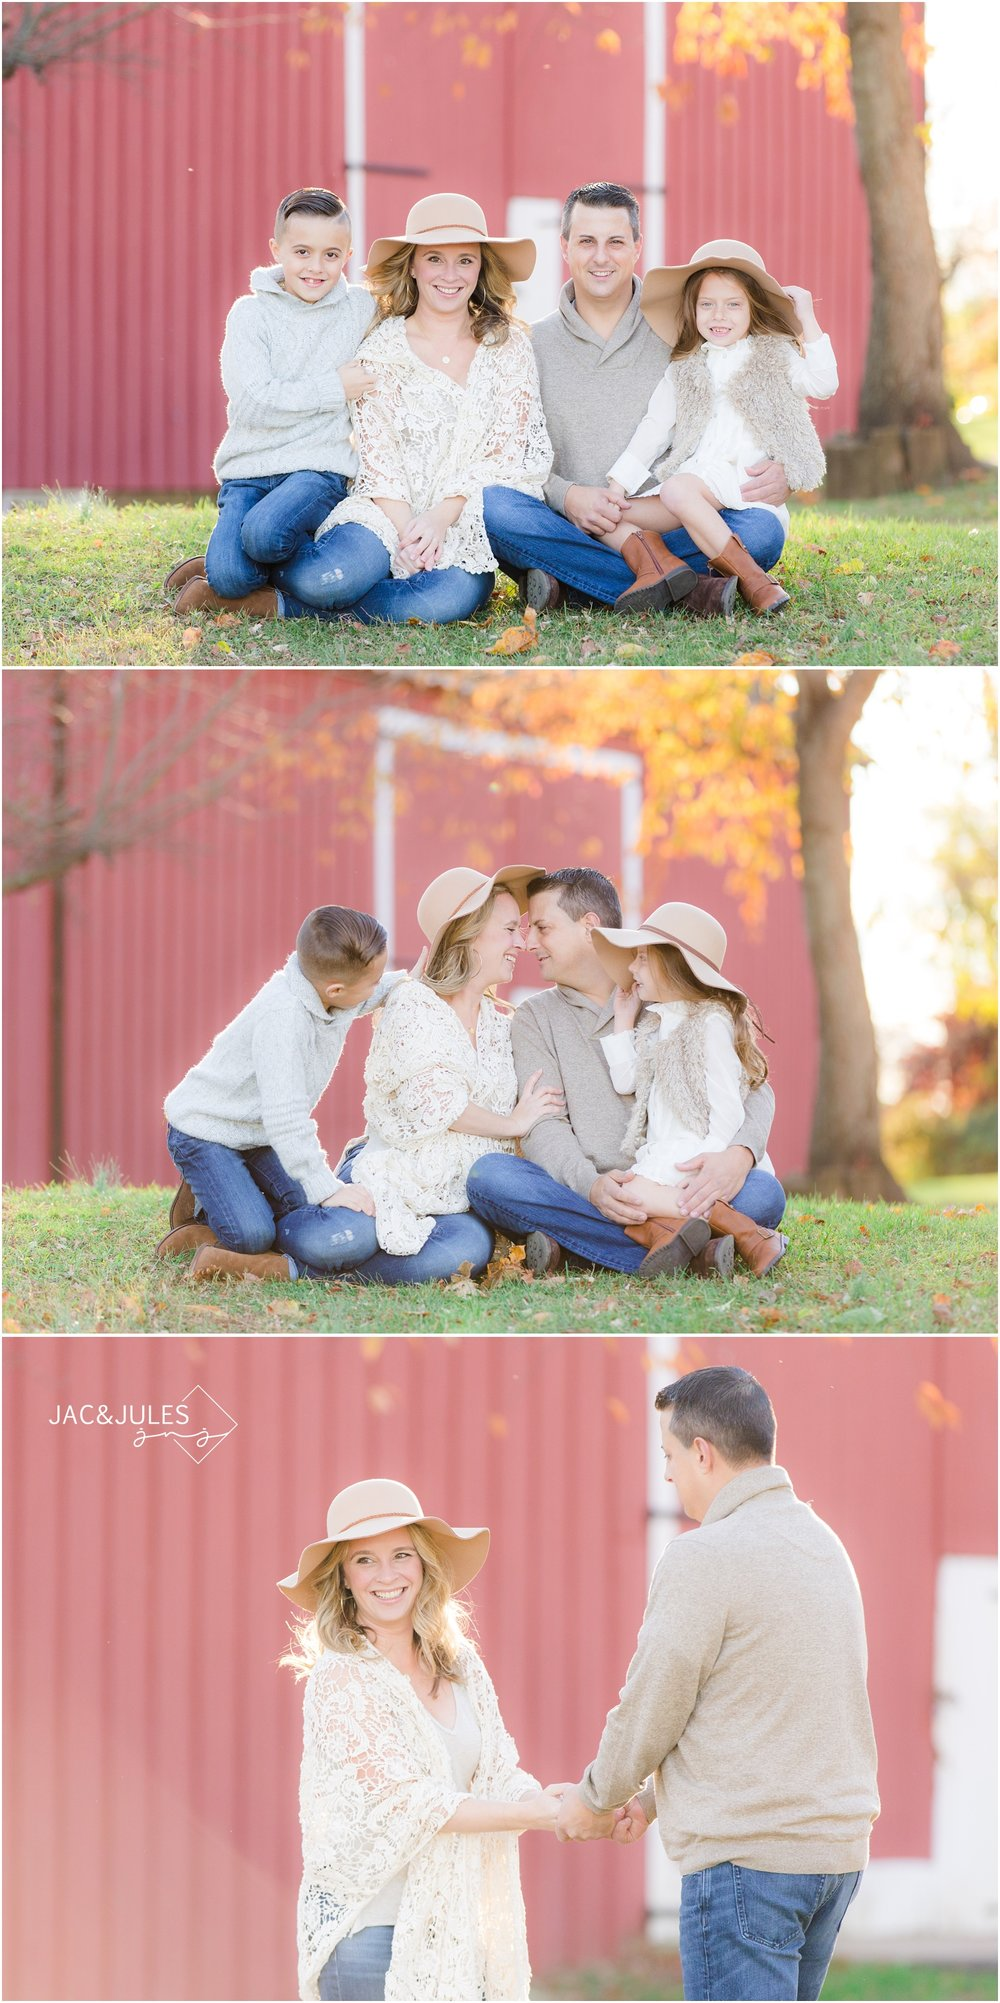 Family photos with red barn at Bayonet Farm in Holmdel, NJ.